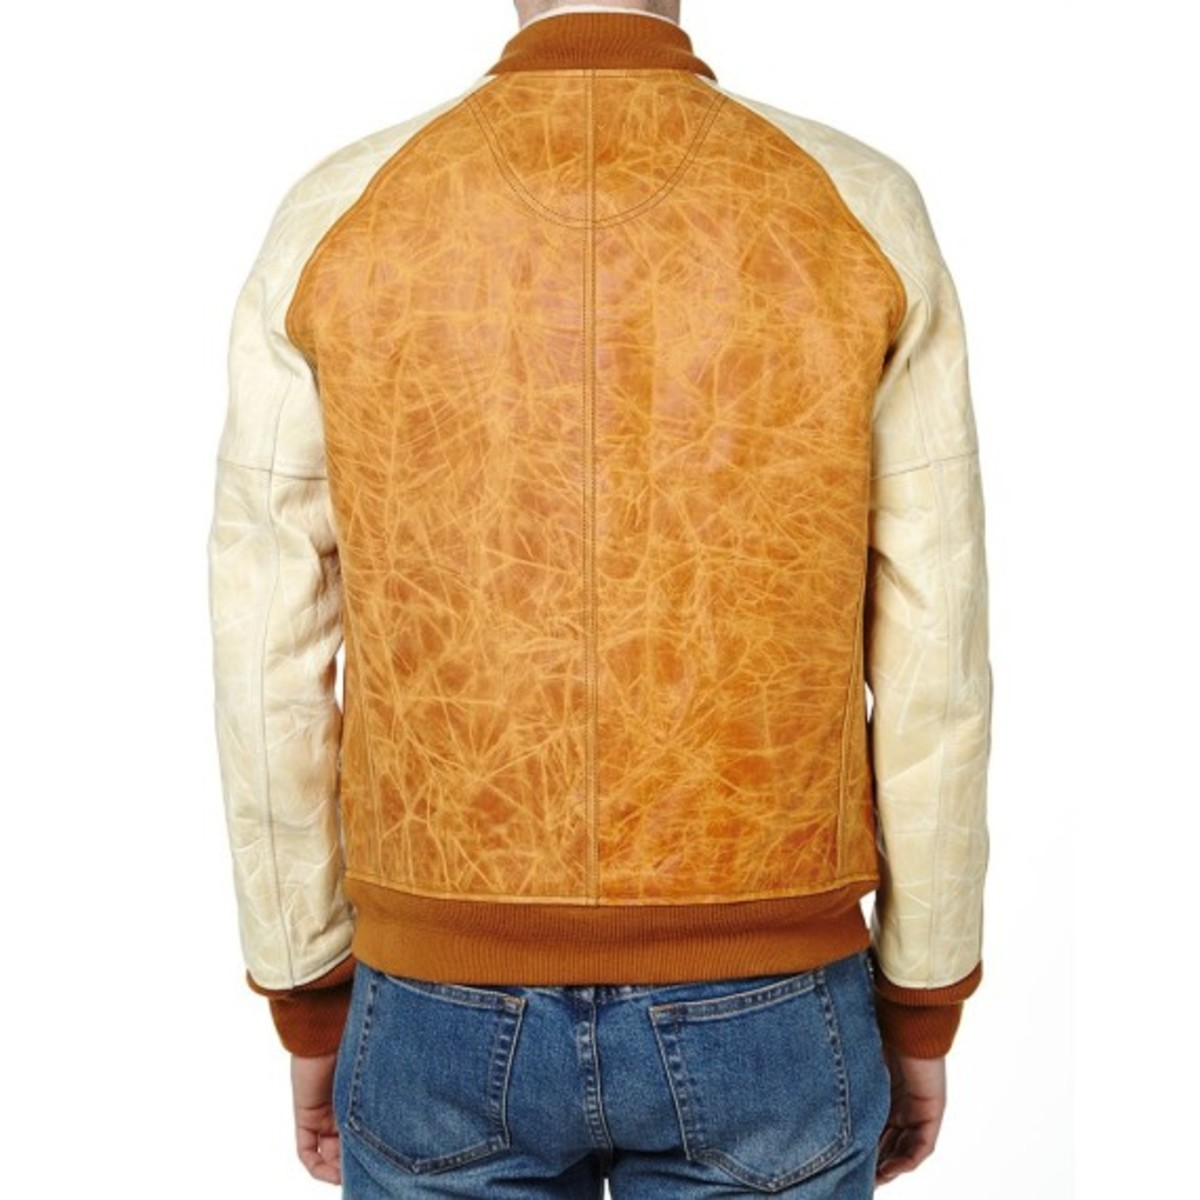 visvim-varsity-jacket-light-brown-09